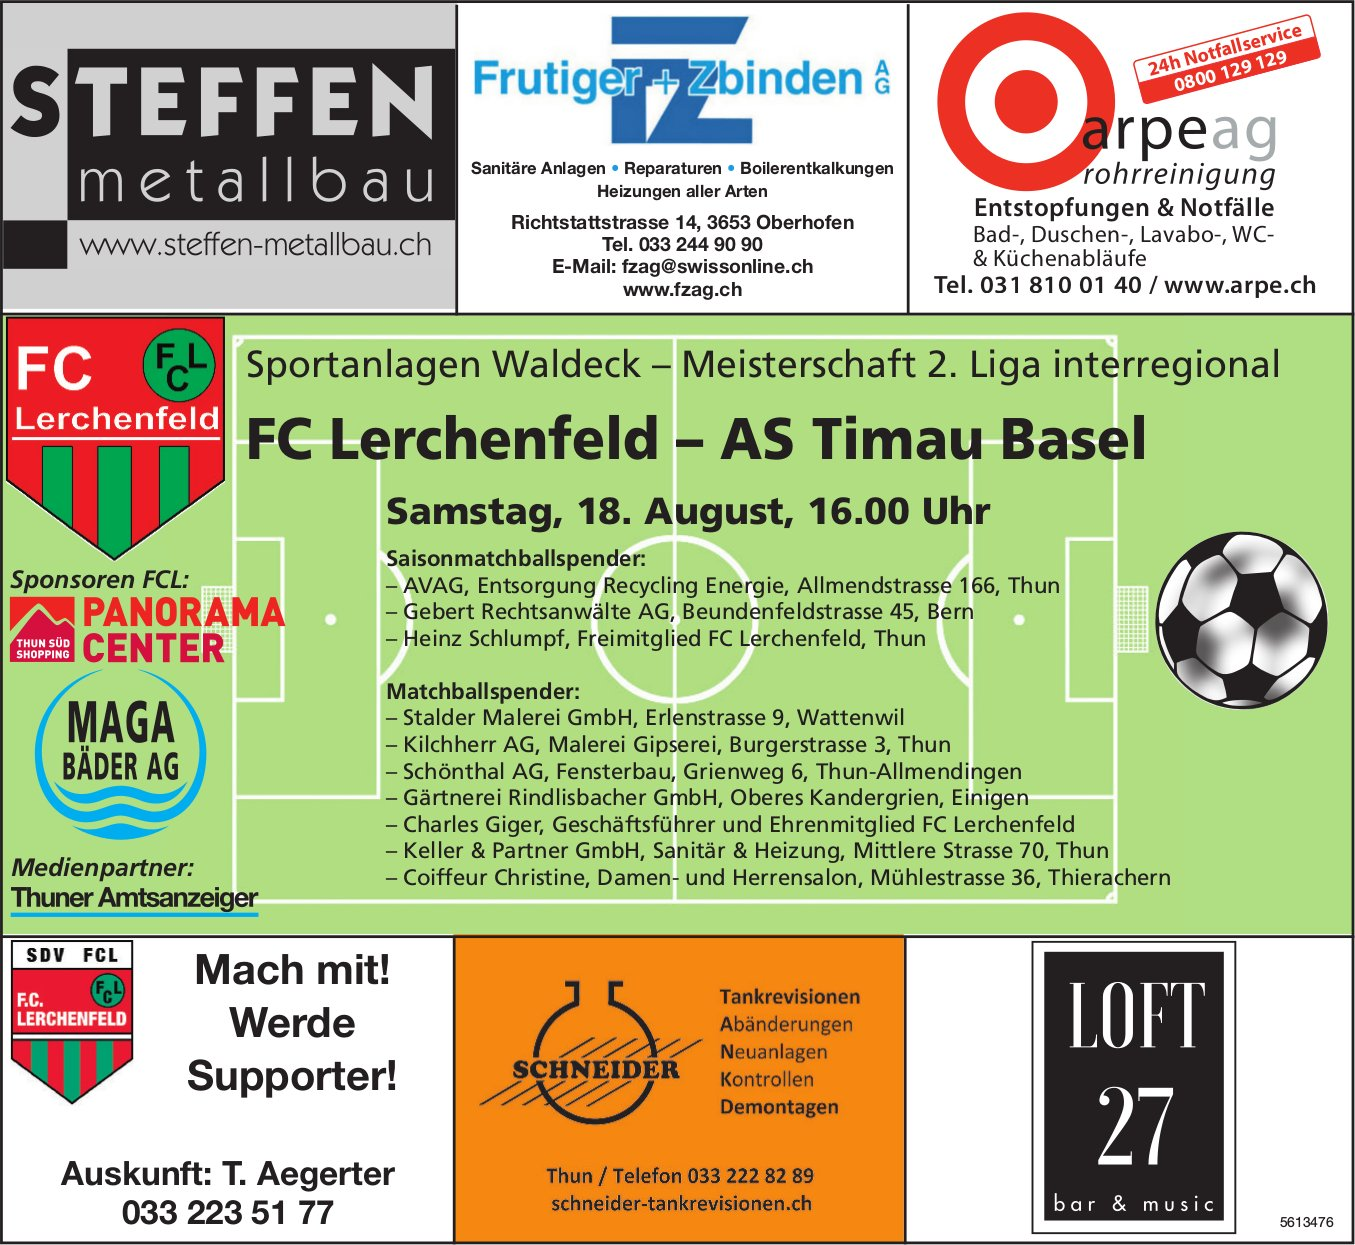 Meisterschaft 2. Liga interregional - FC Lerchenfeld vs. AS Timau Basel am 18. August